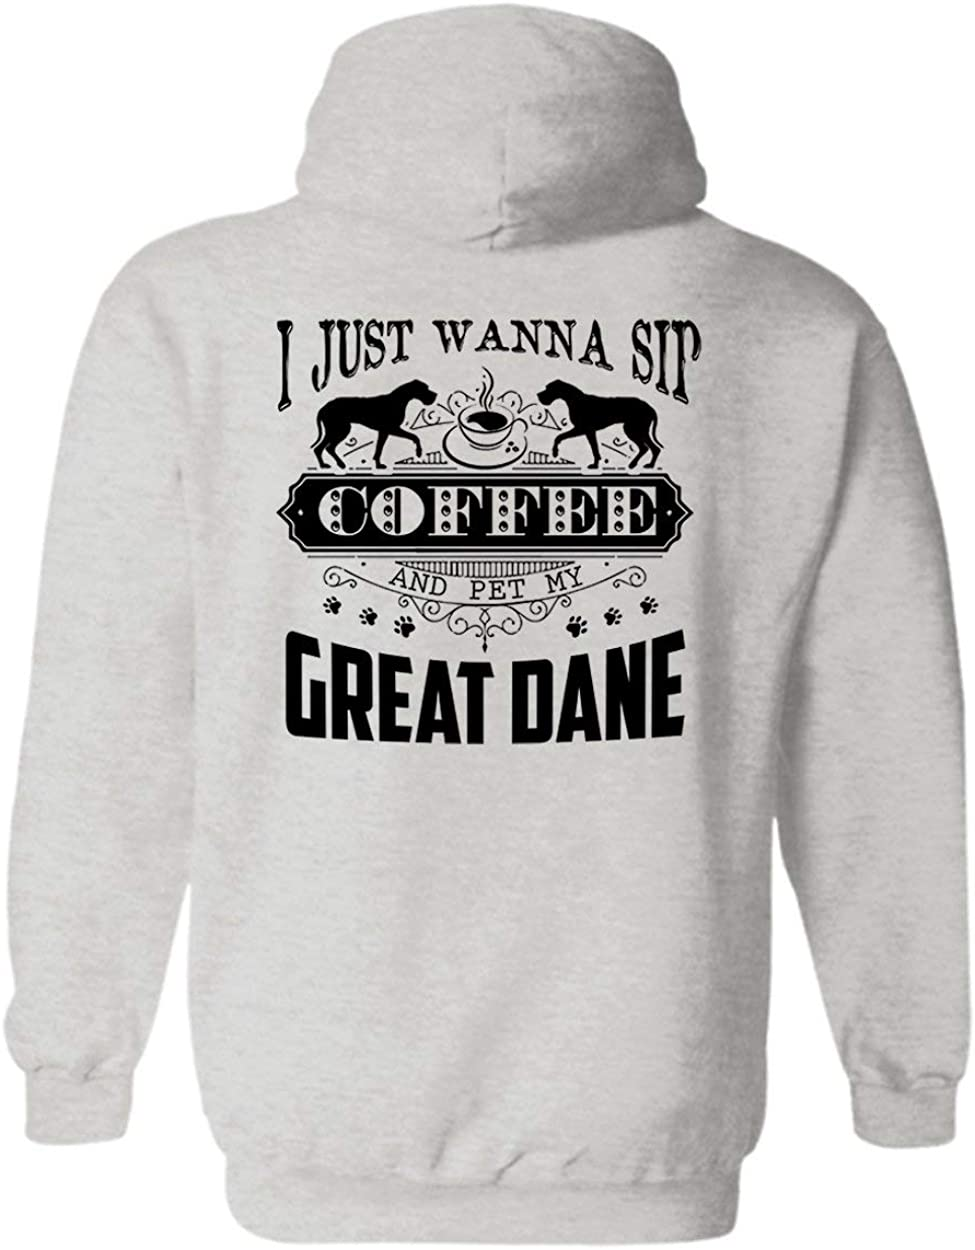 Sunny Yellow Sip Coffee Pet My Long Our shop most popular Ho Dane Max 80% OFF Hoodie Sleeve Great